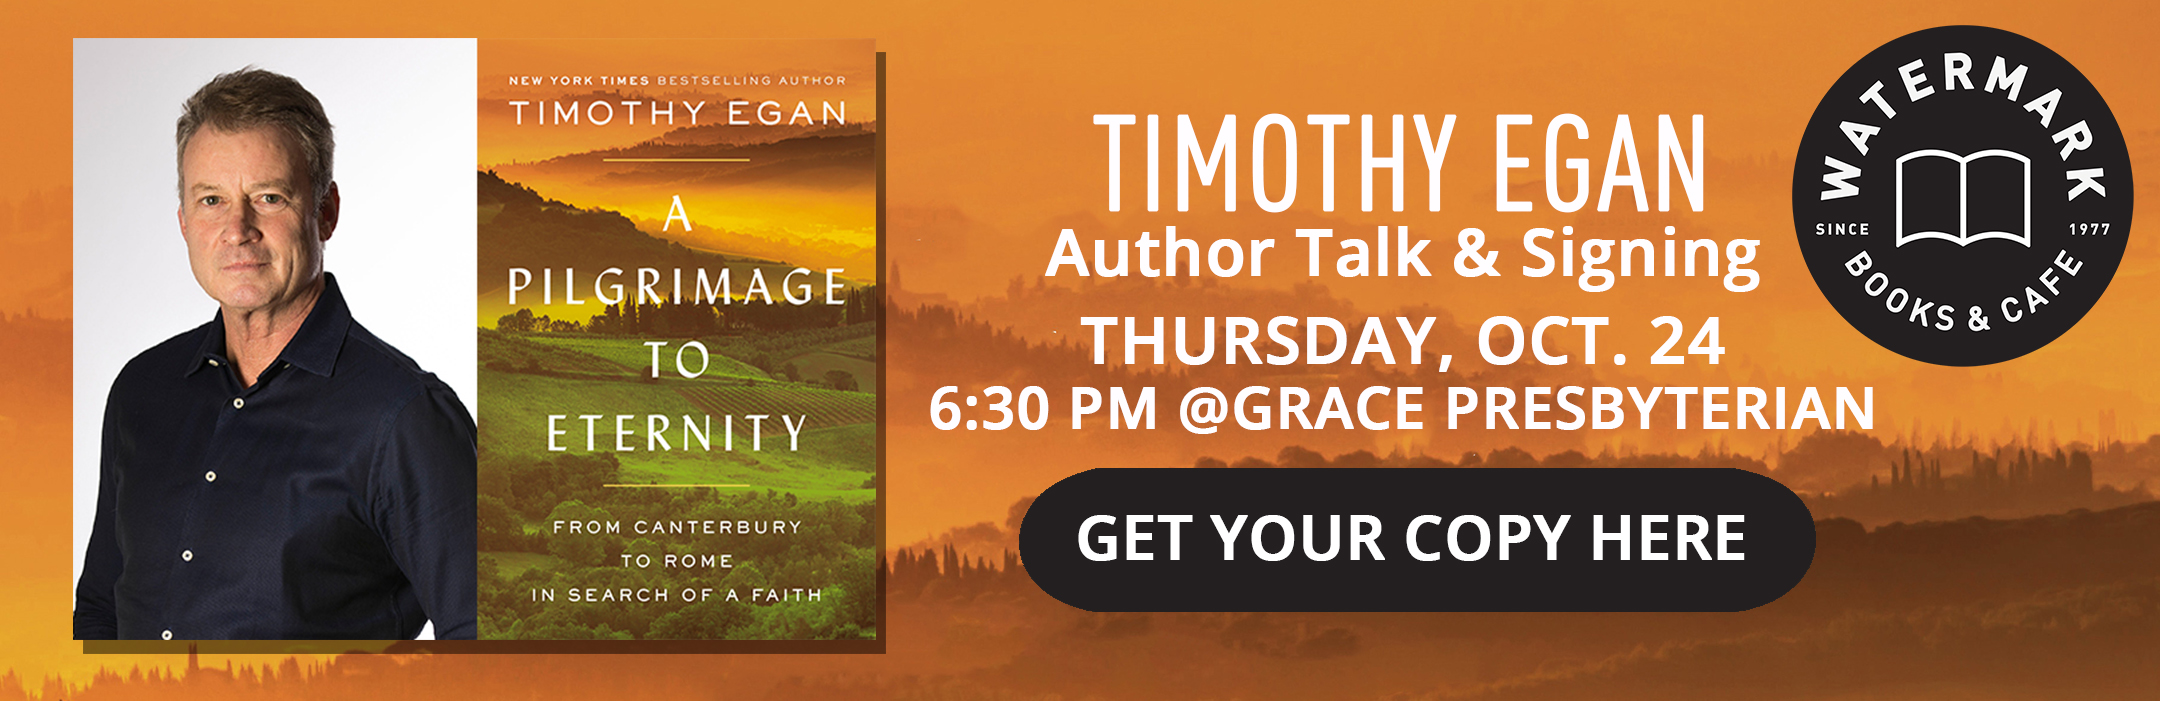 Timothy Egan Author Talk & Signing with Watermark Books